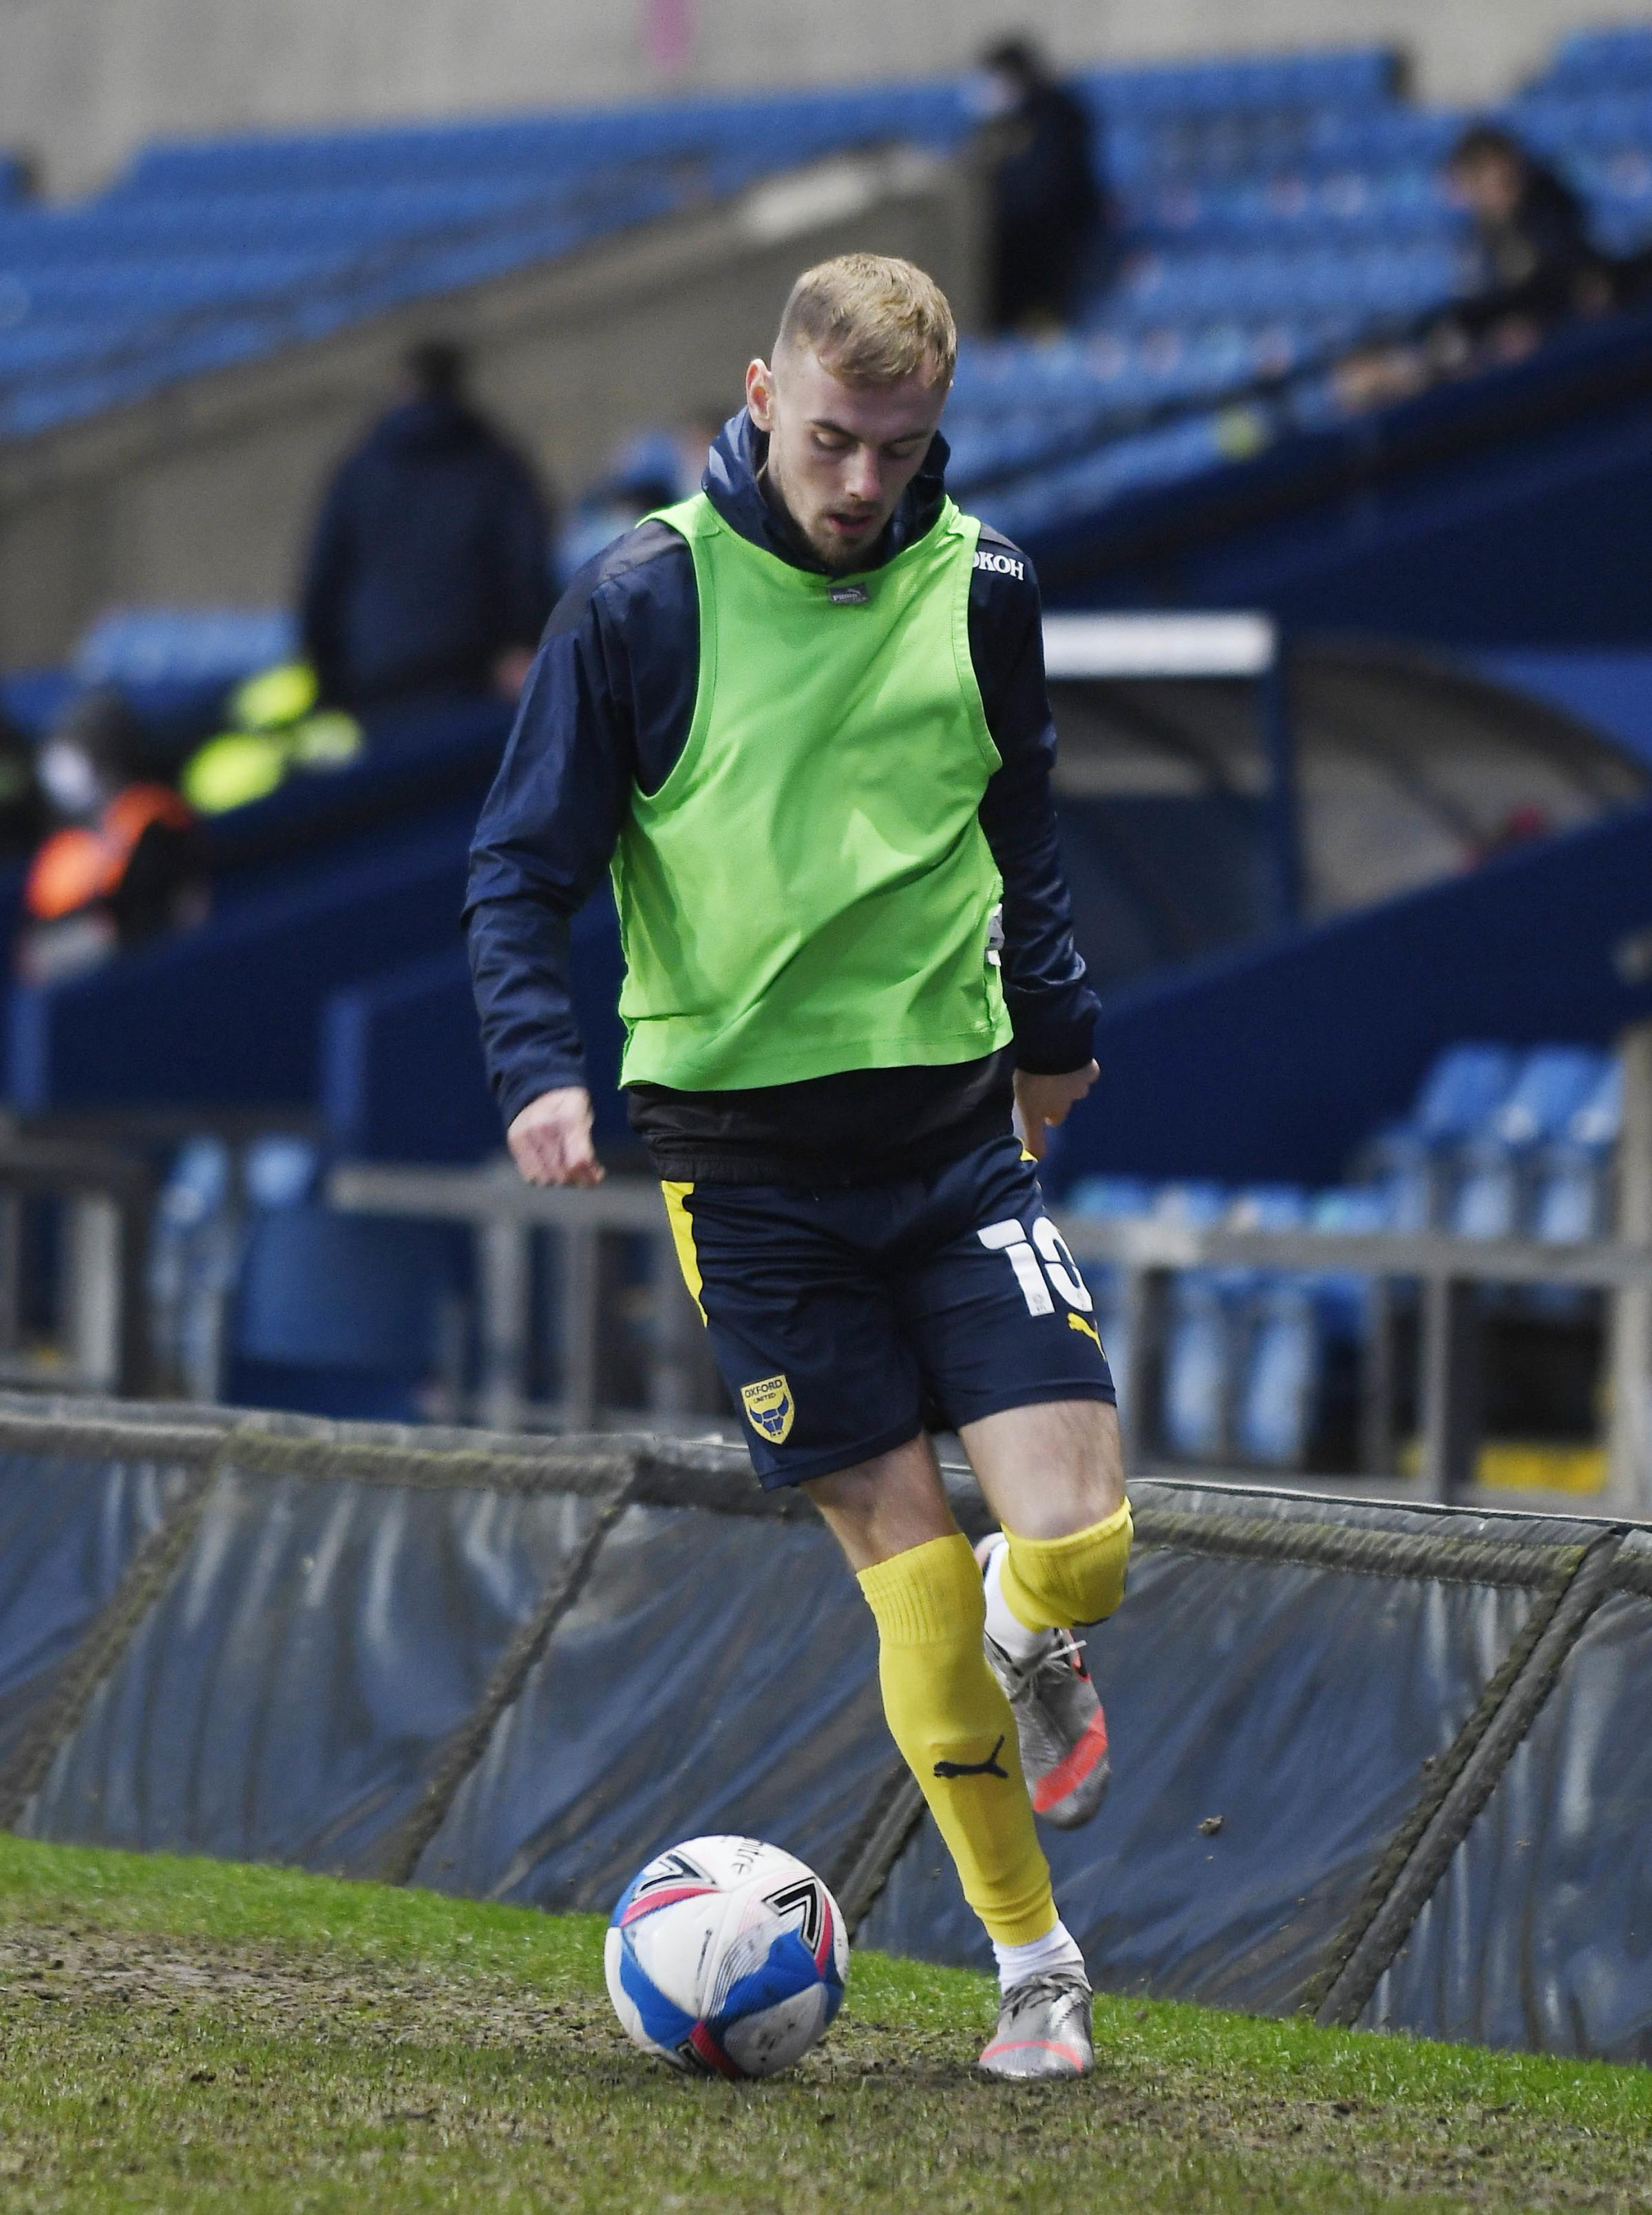 Mark Sykes warming up during Oxford United's home game against Fleetwood Town last month. Picture by: David Fleming